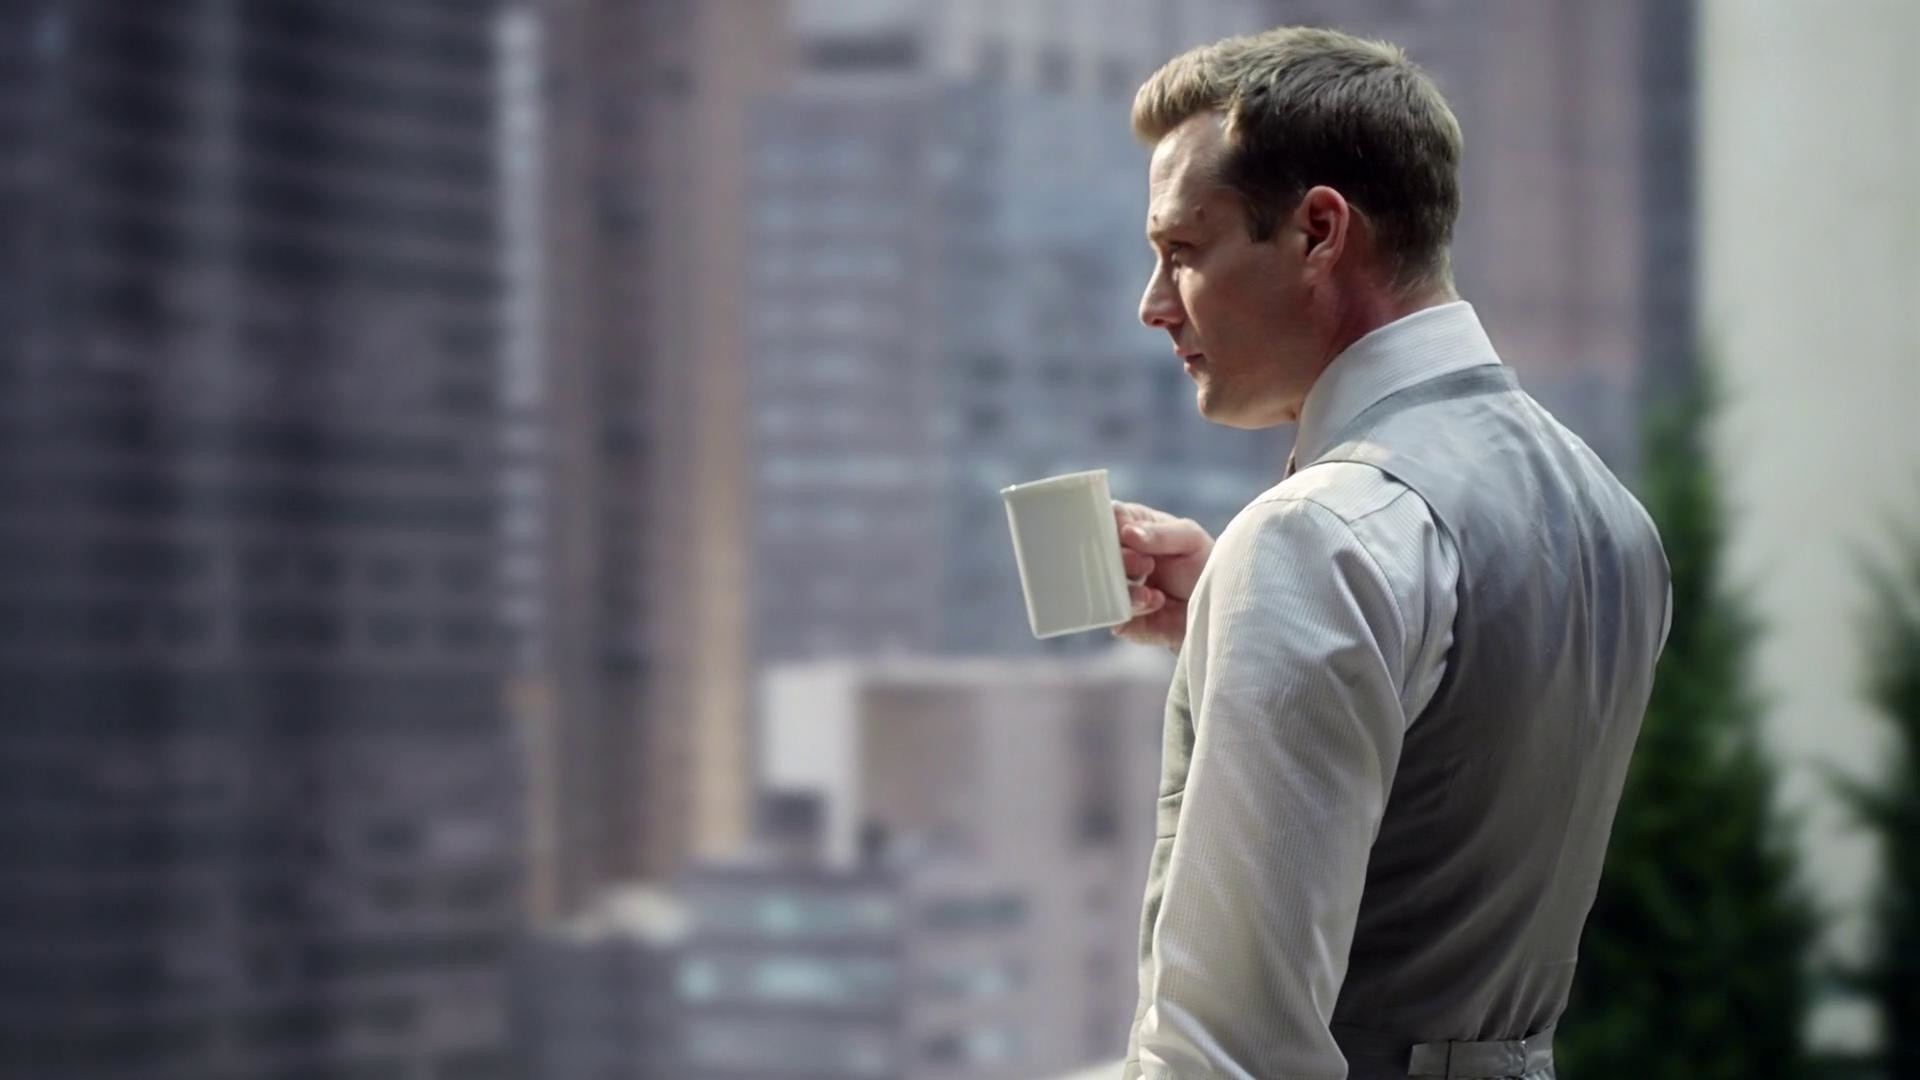 Suits Hd Wallpaper Quotes Harvey Specter Wallpaper 78 Images